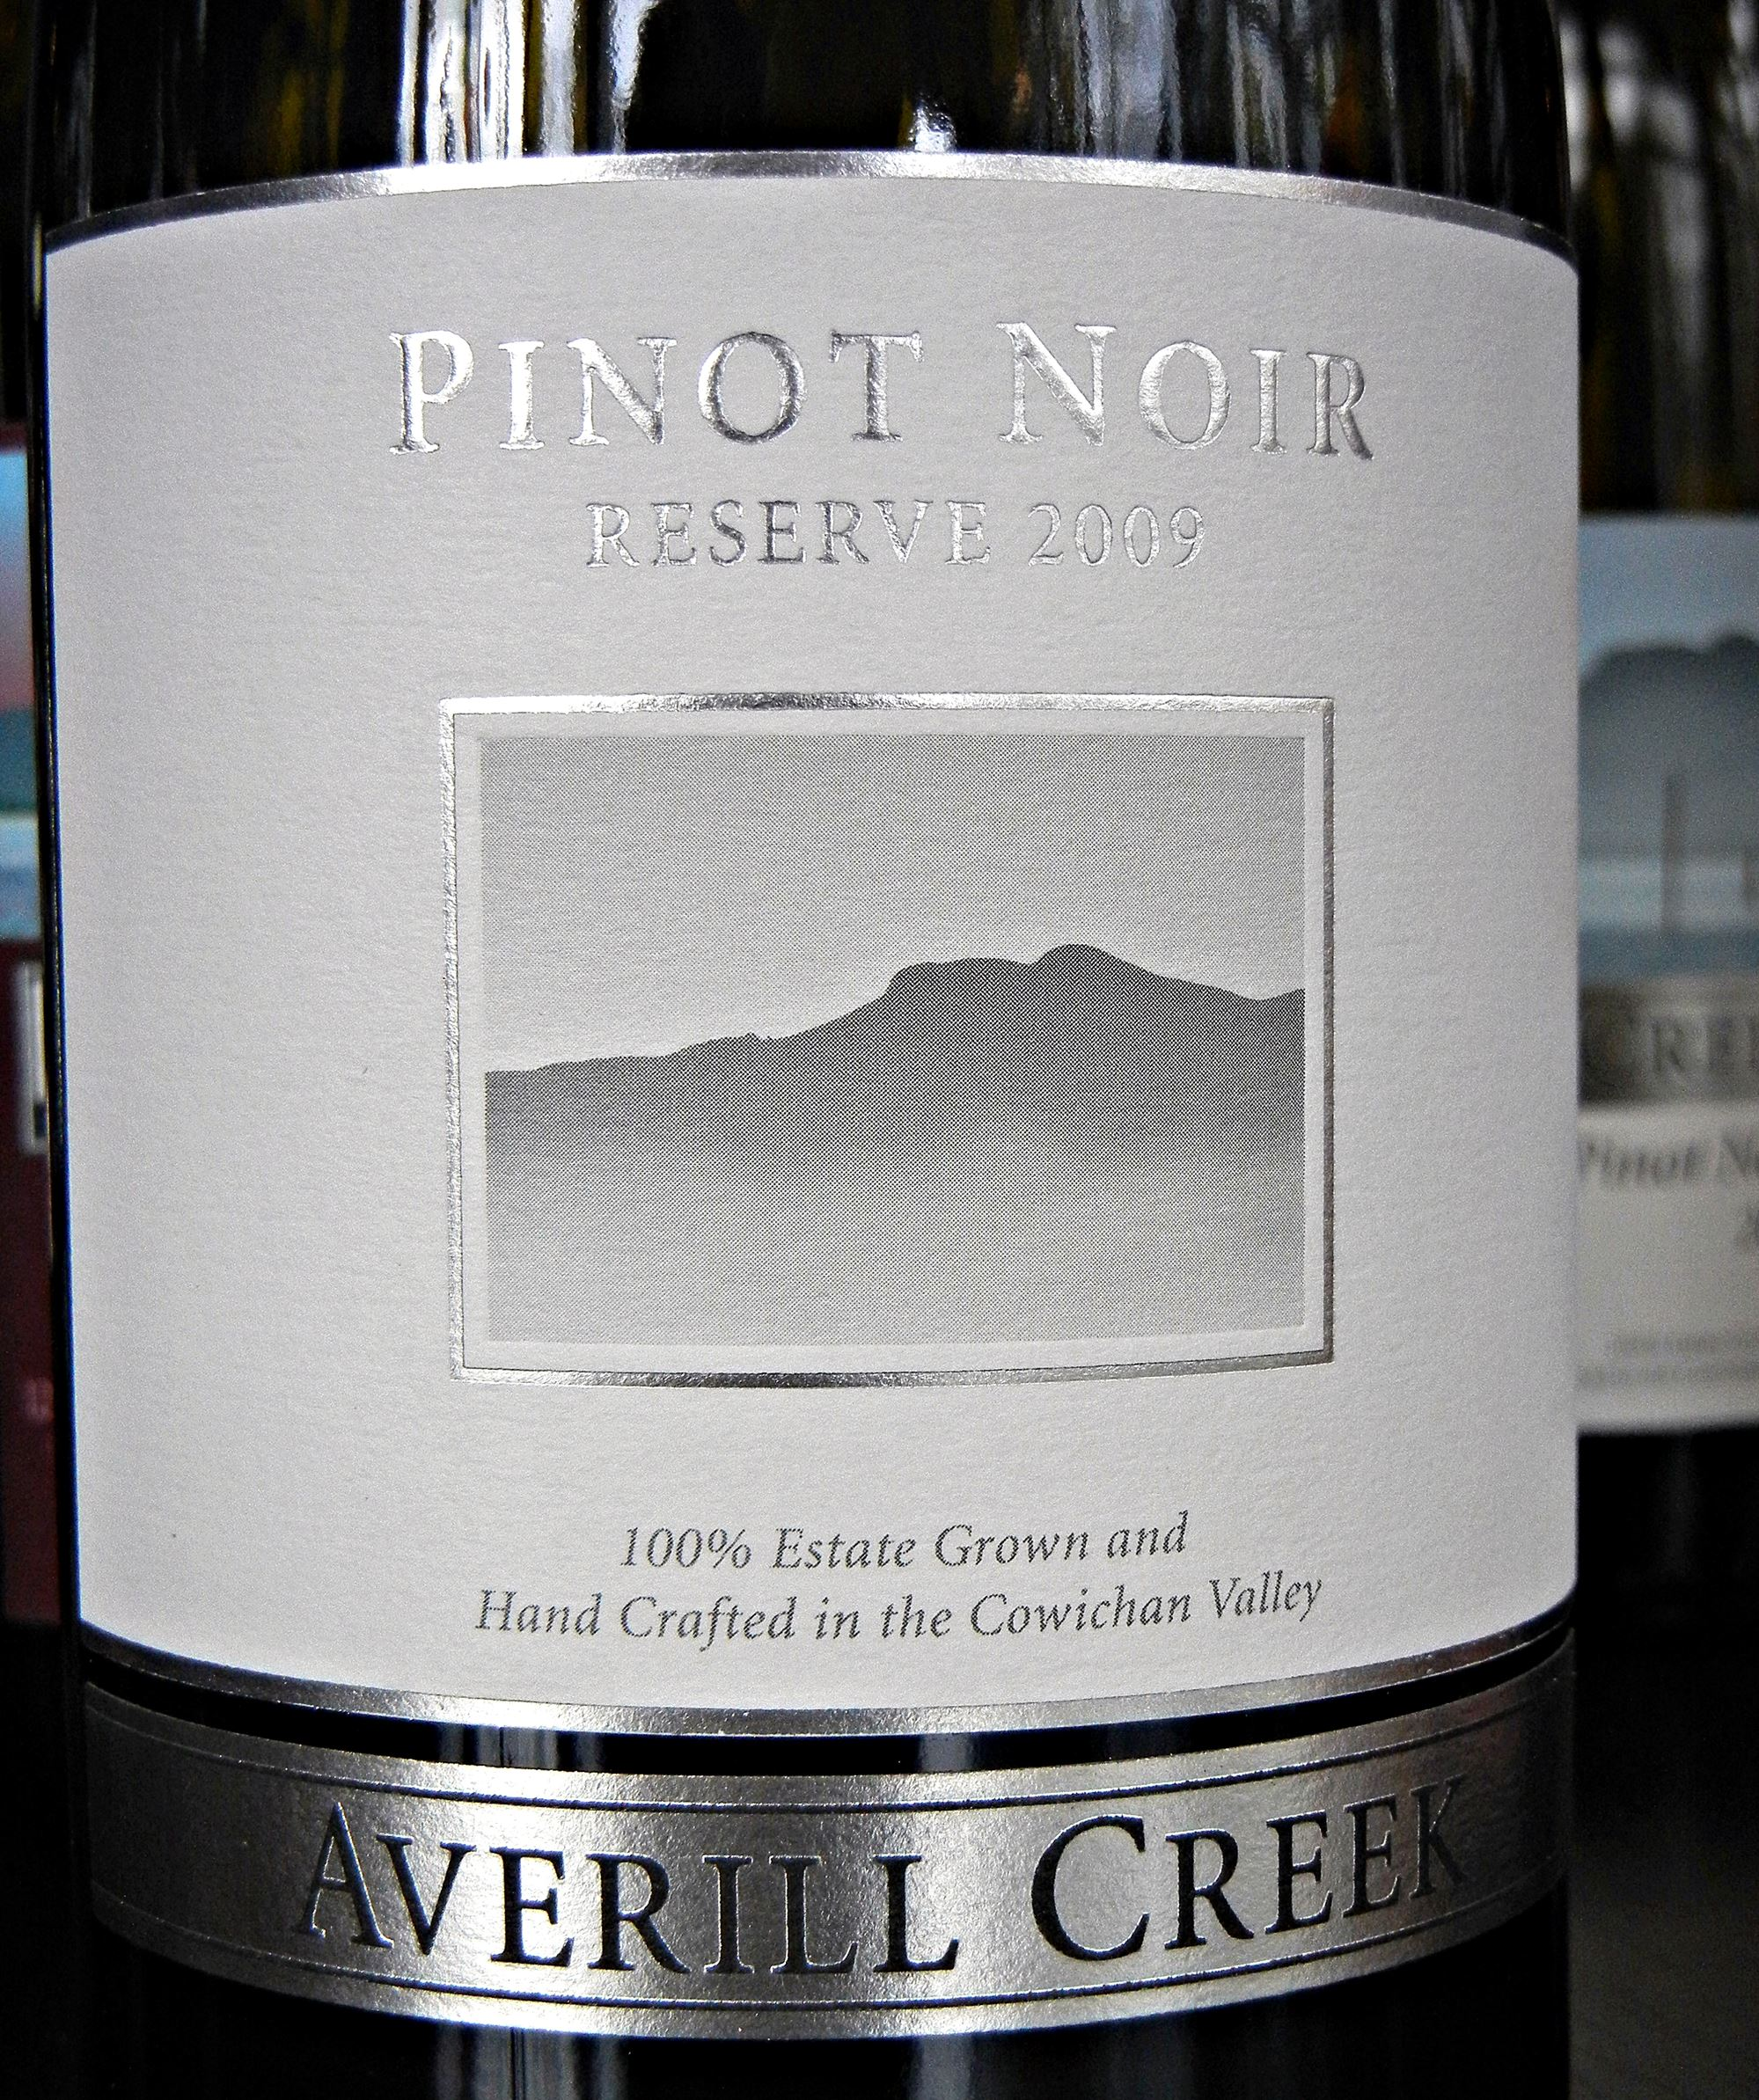 Averill Creek Pinot Noir Reserve 2009 Label - BC Pinot Noir Tasting Review 24